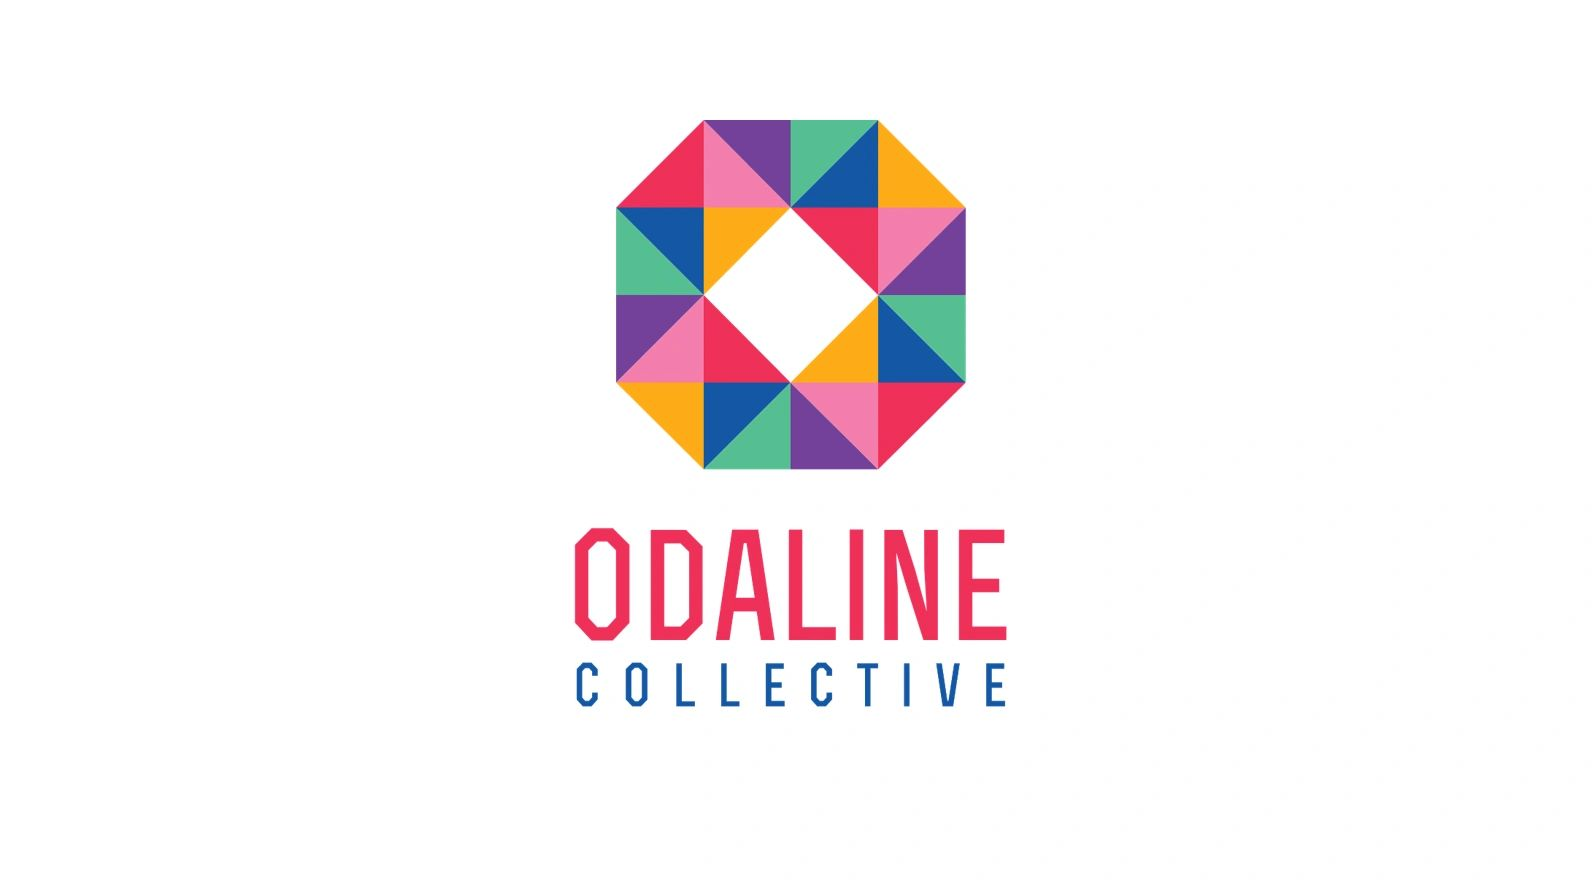 ODALINE - transforming your marketing at the intersection of data and content